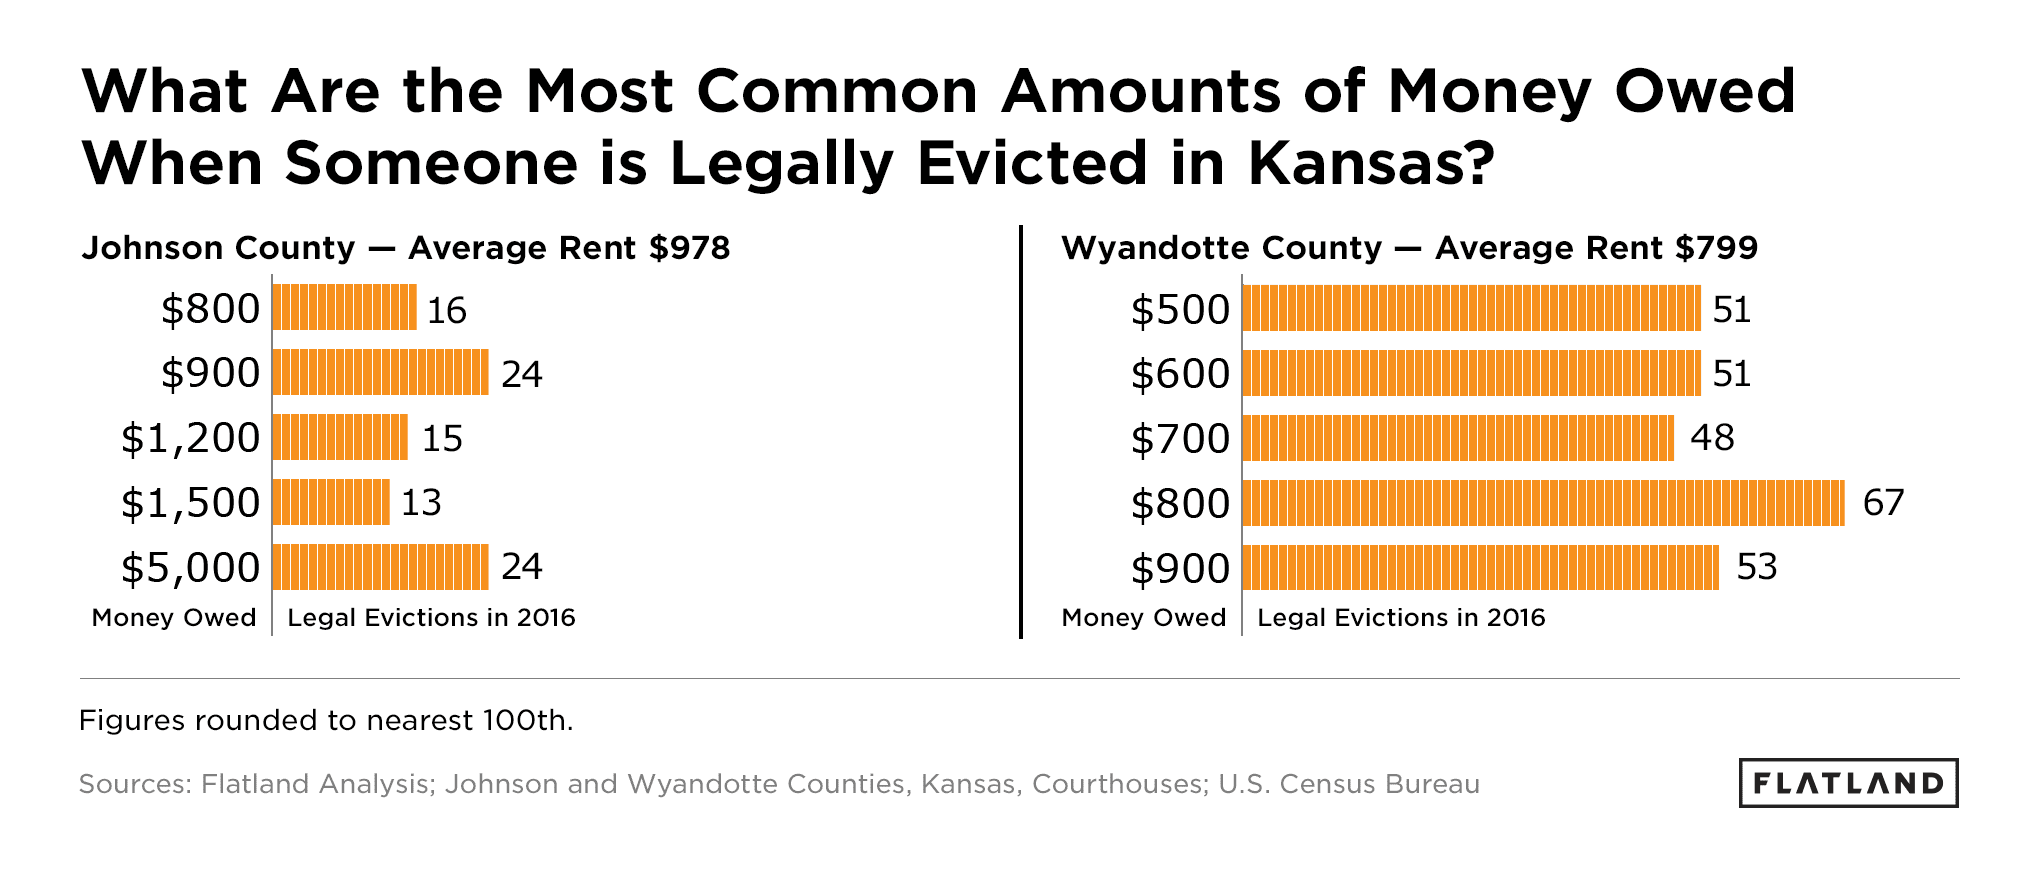 What Are the Most Common Amounts of Money Owed When Someone is Legally Evicted in Kansas?